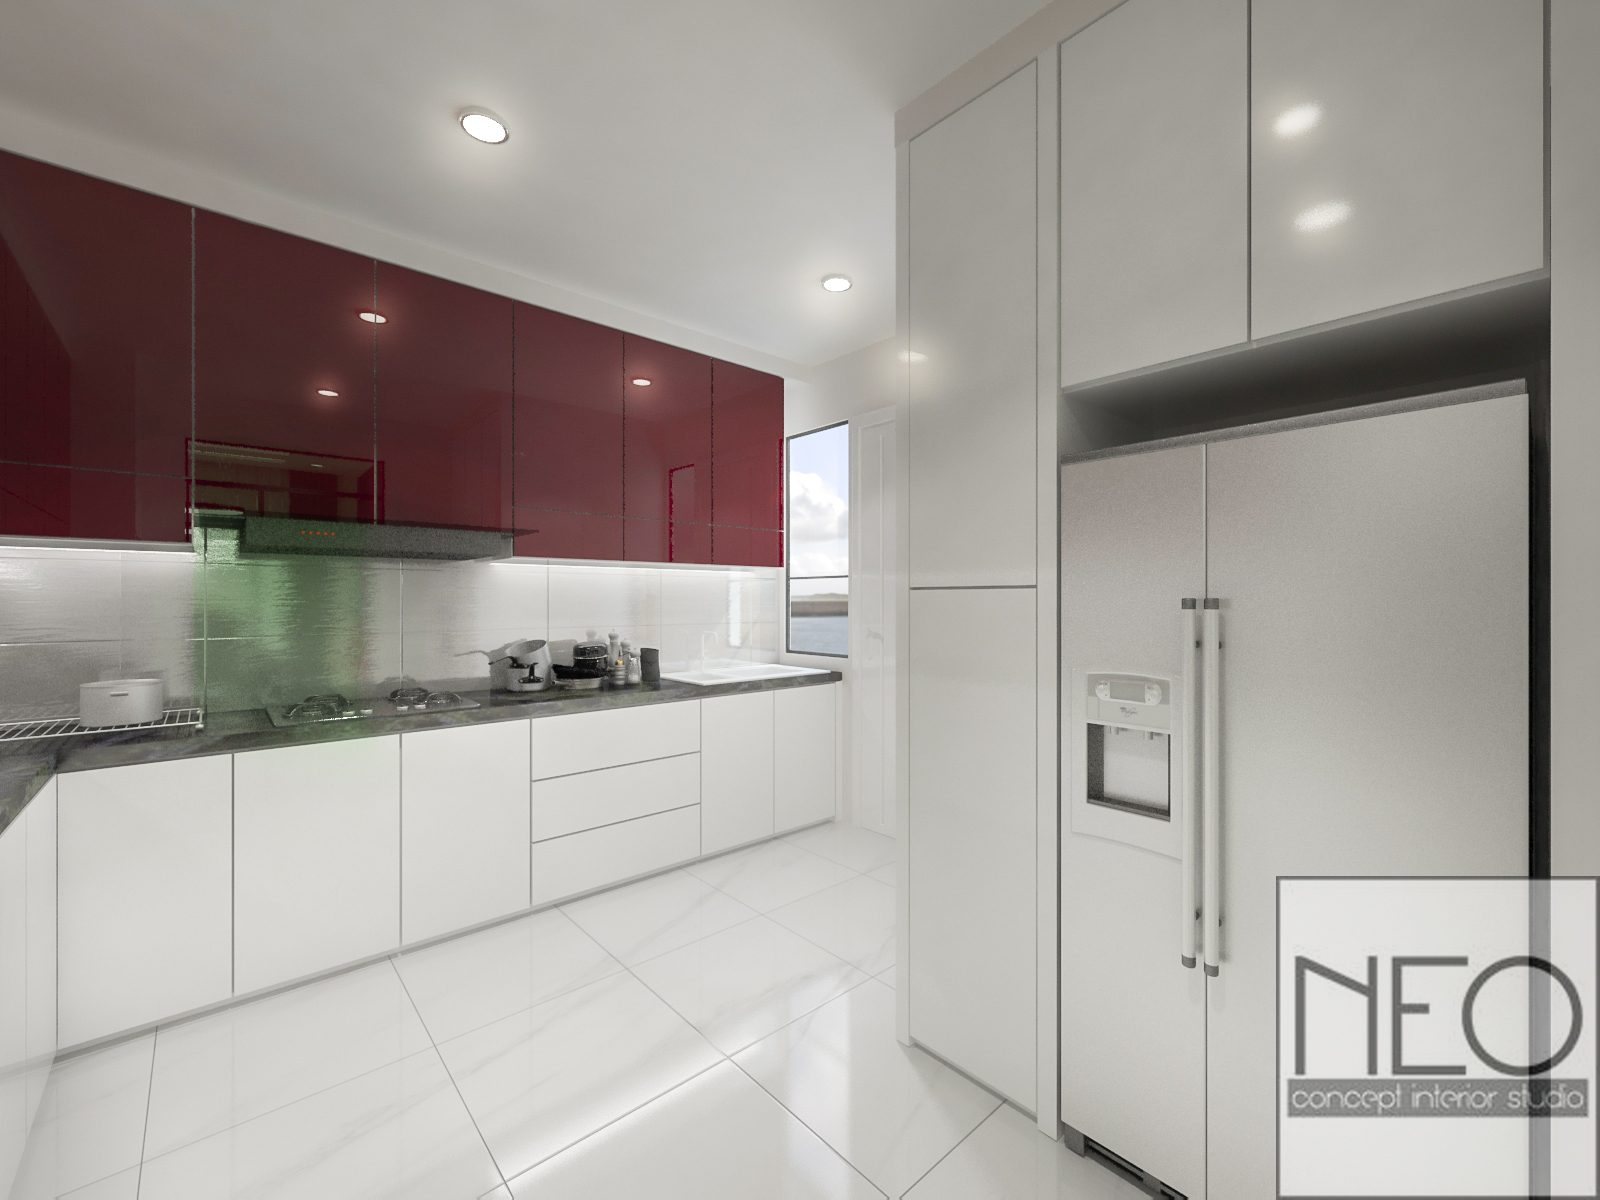 Semi-Detached House in Taman Sutera, Kajang. Project by: Neo In Design